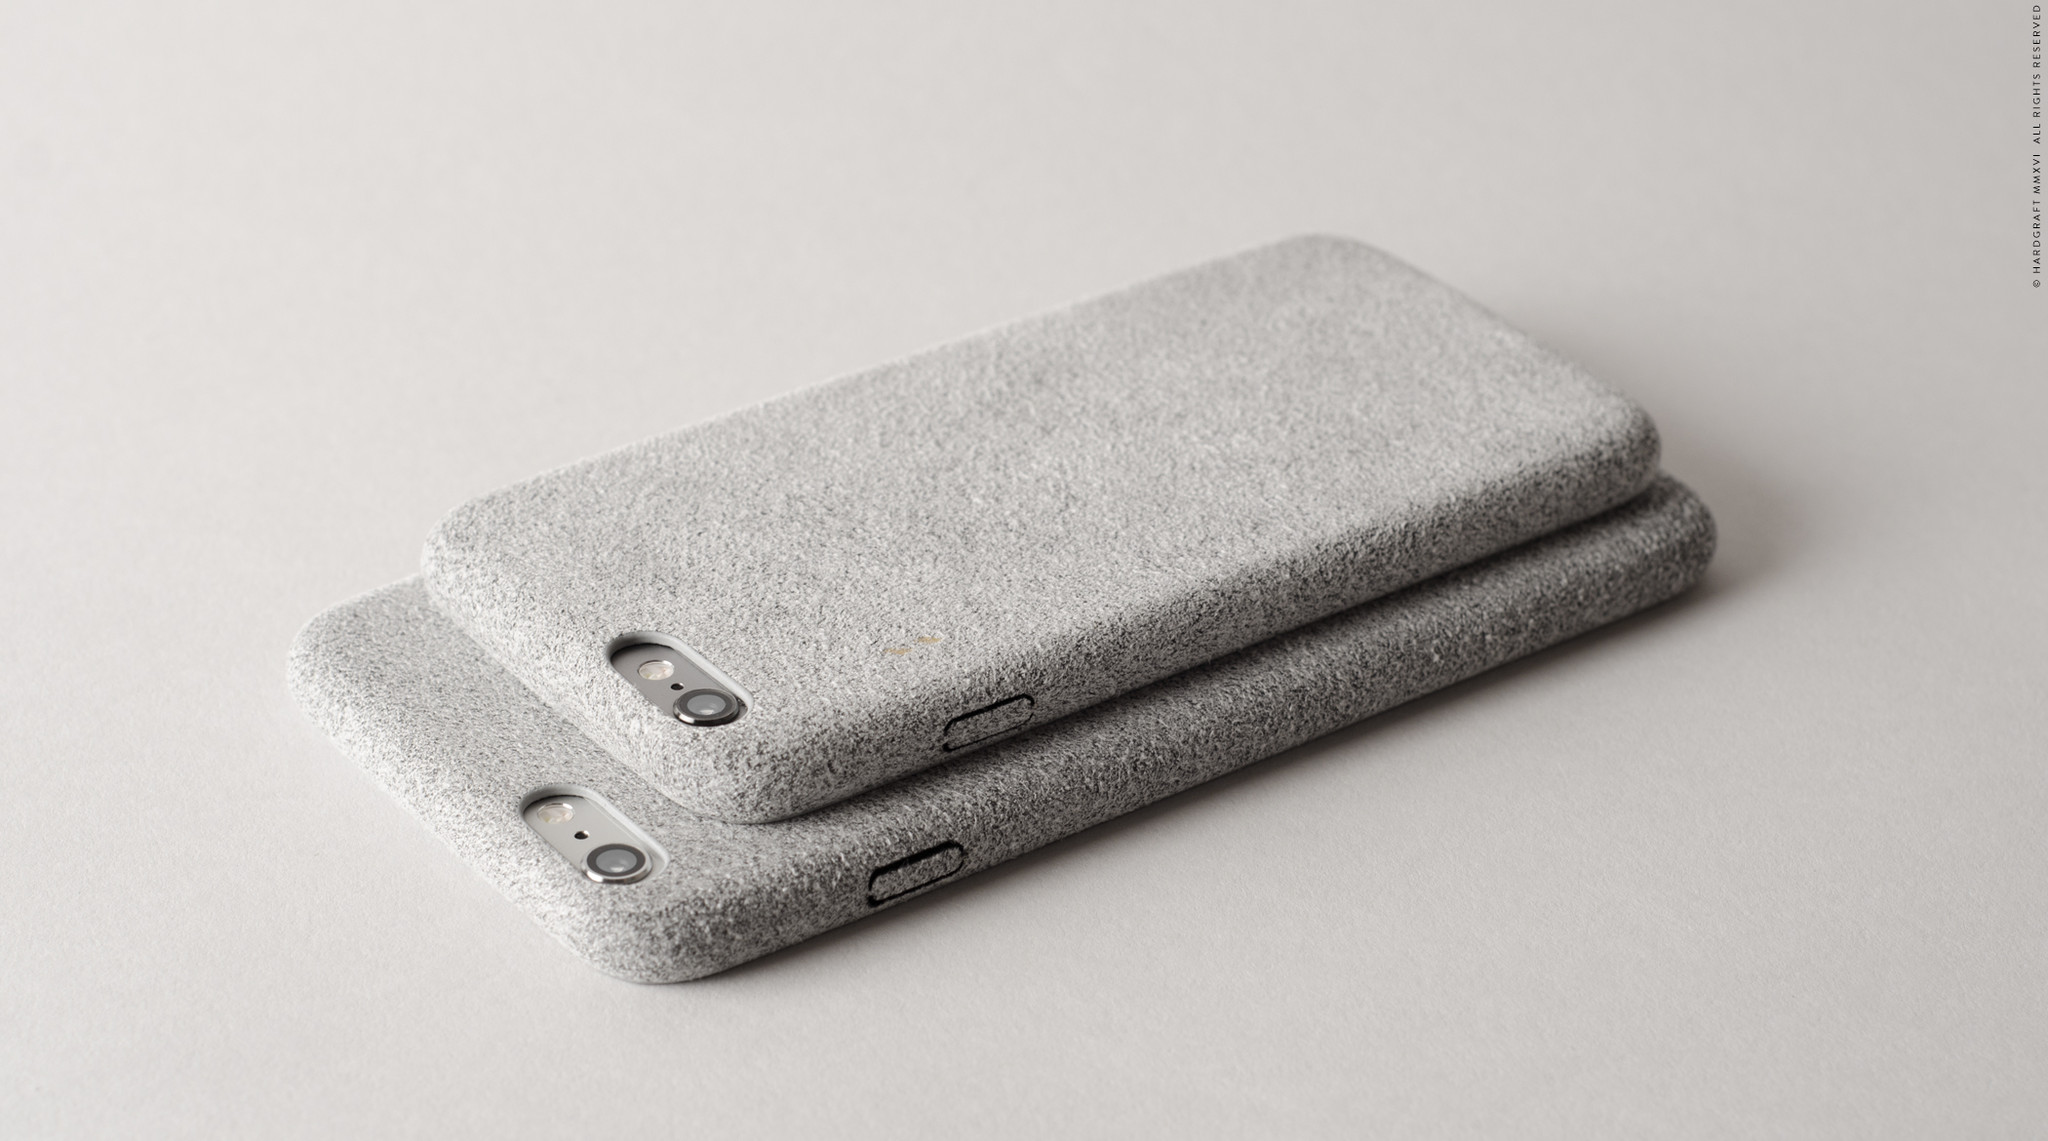 Fuzzy iPhone Cover   A protective iPhone cover with a soft and fuzzy suede-like material, a pliable construction that snaps securely to your iPhone.  HARD GRAFT $35